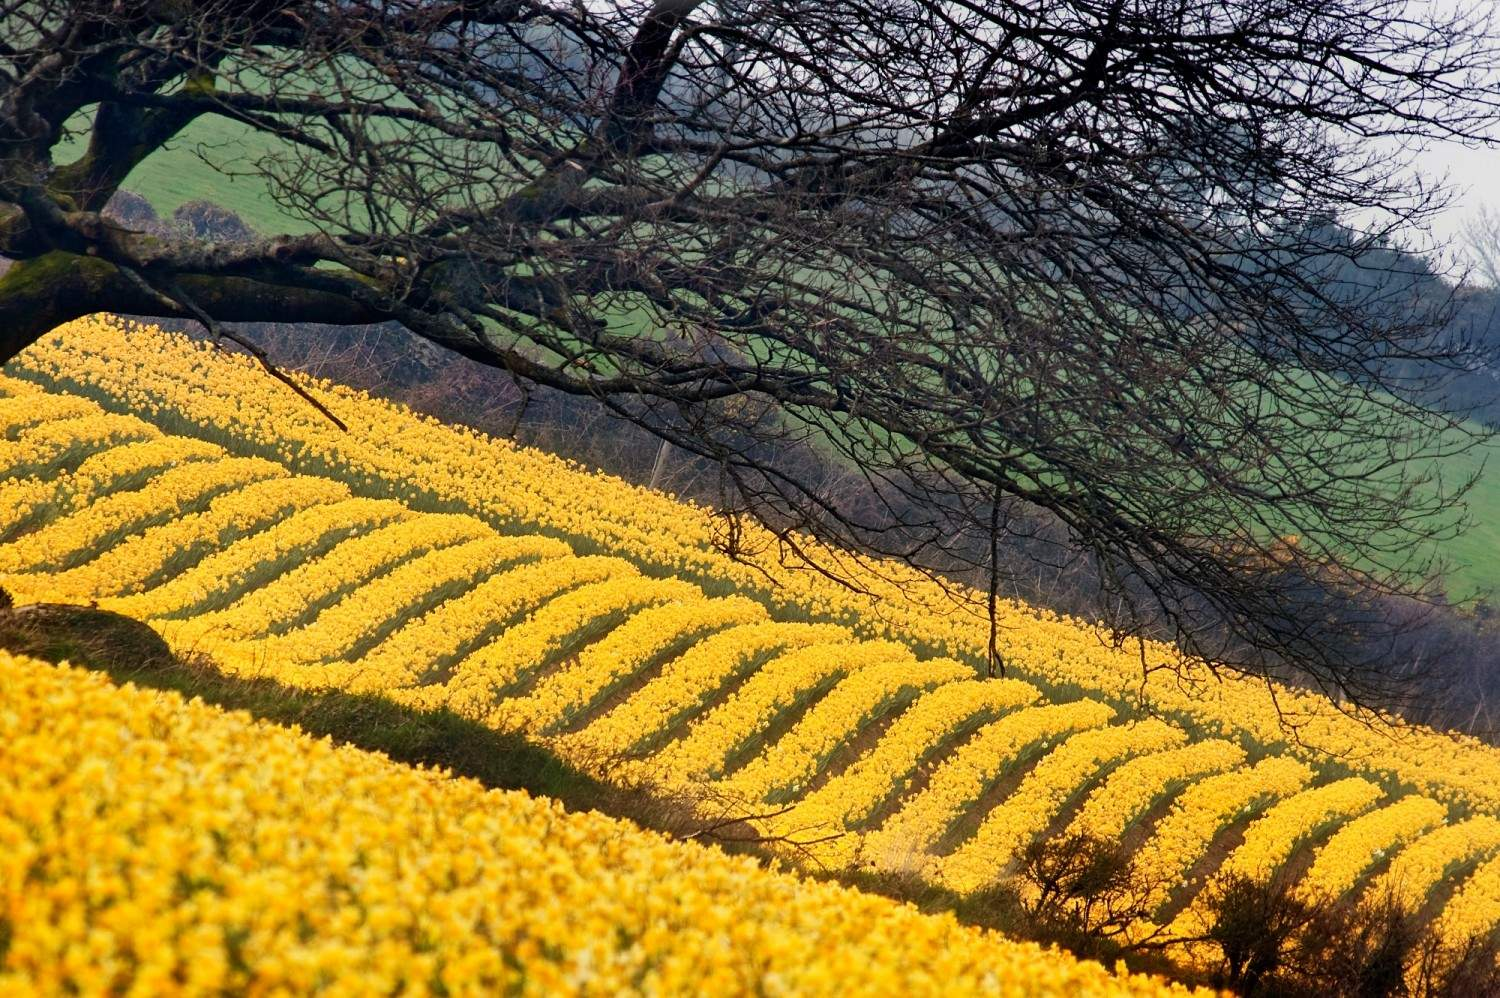 Did you Kernow - Daffodils are one of Cornwall's largest industries?